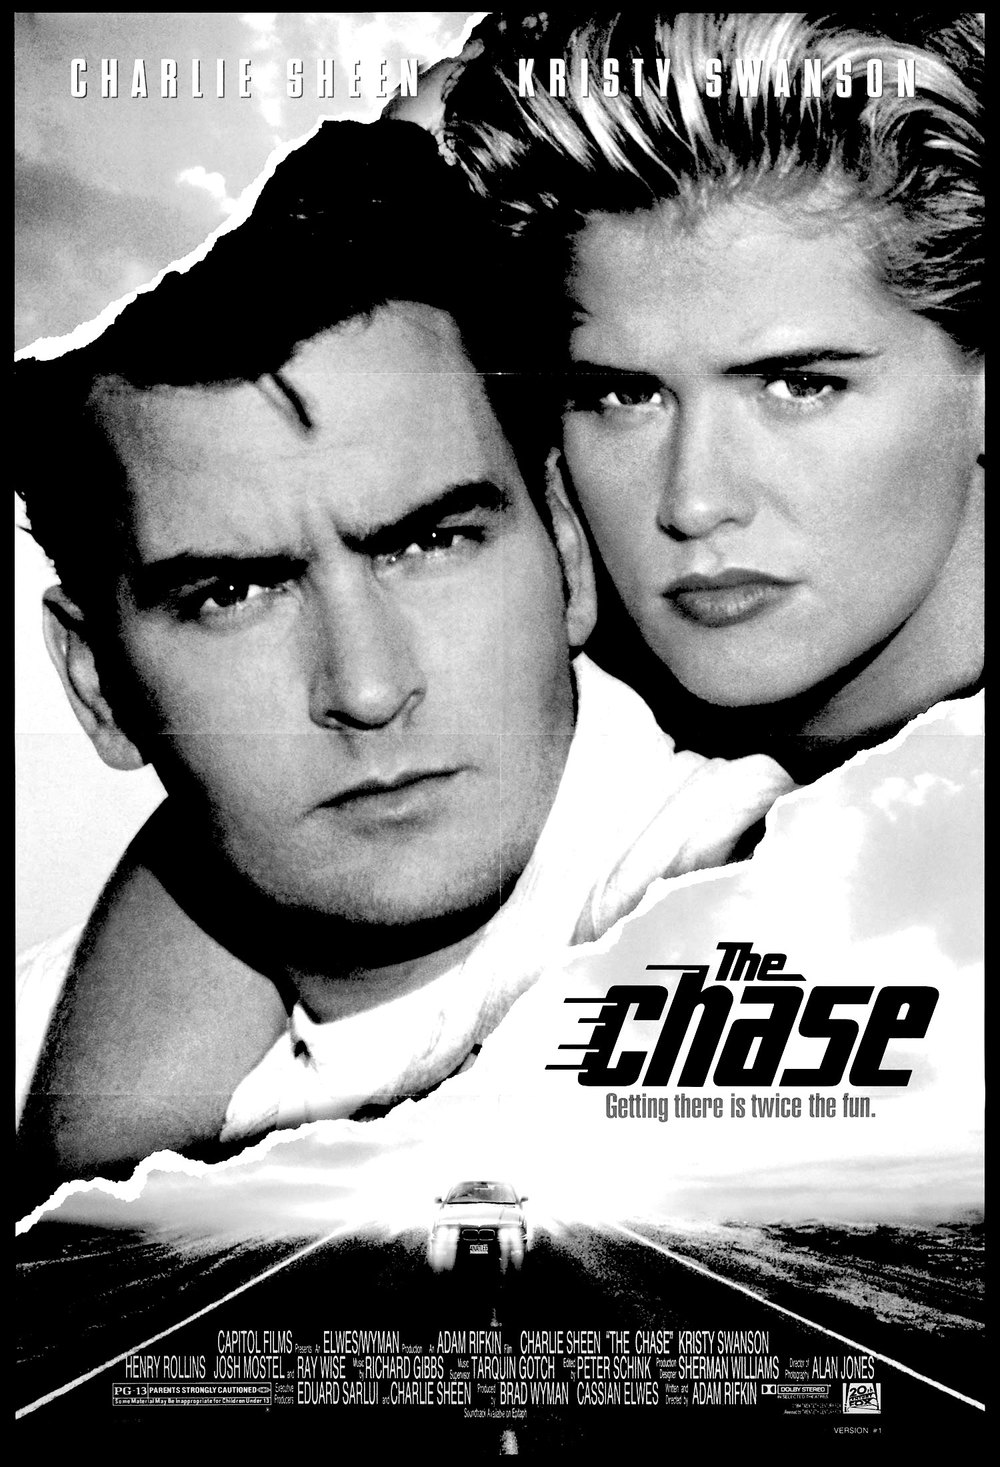 The-Chase-charlie-sheen-film-score-composer-richard-gibbs.jpg